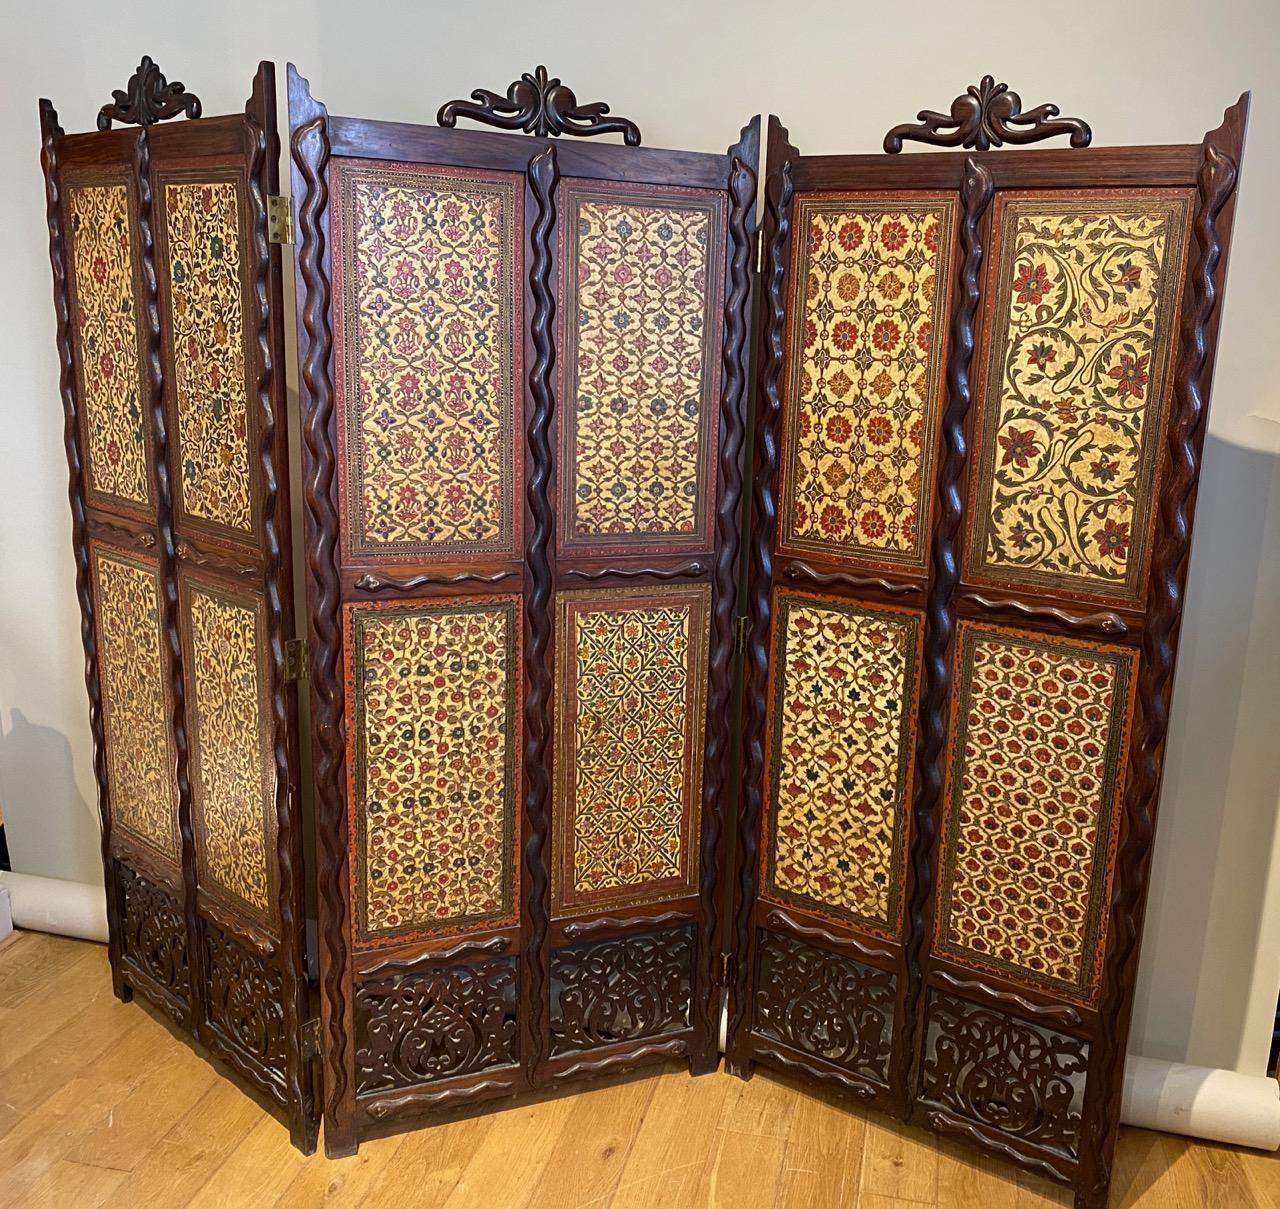 Anglo-Indian Folding Screen